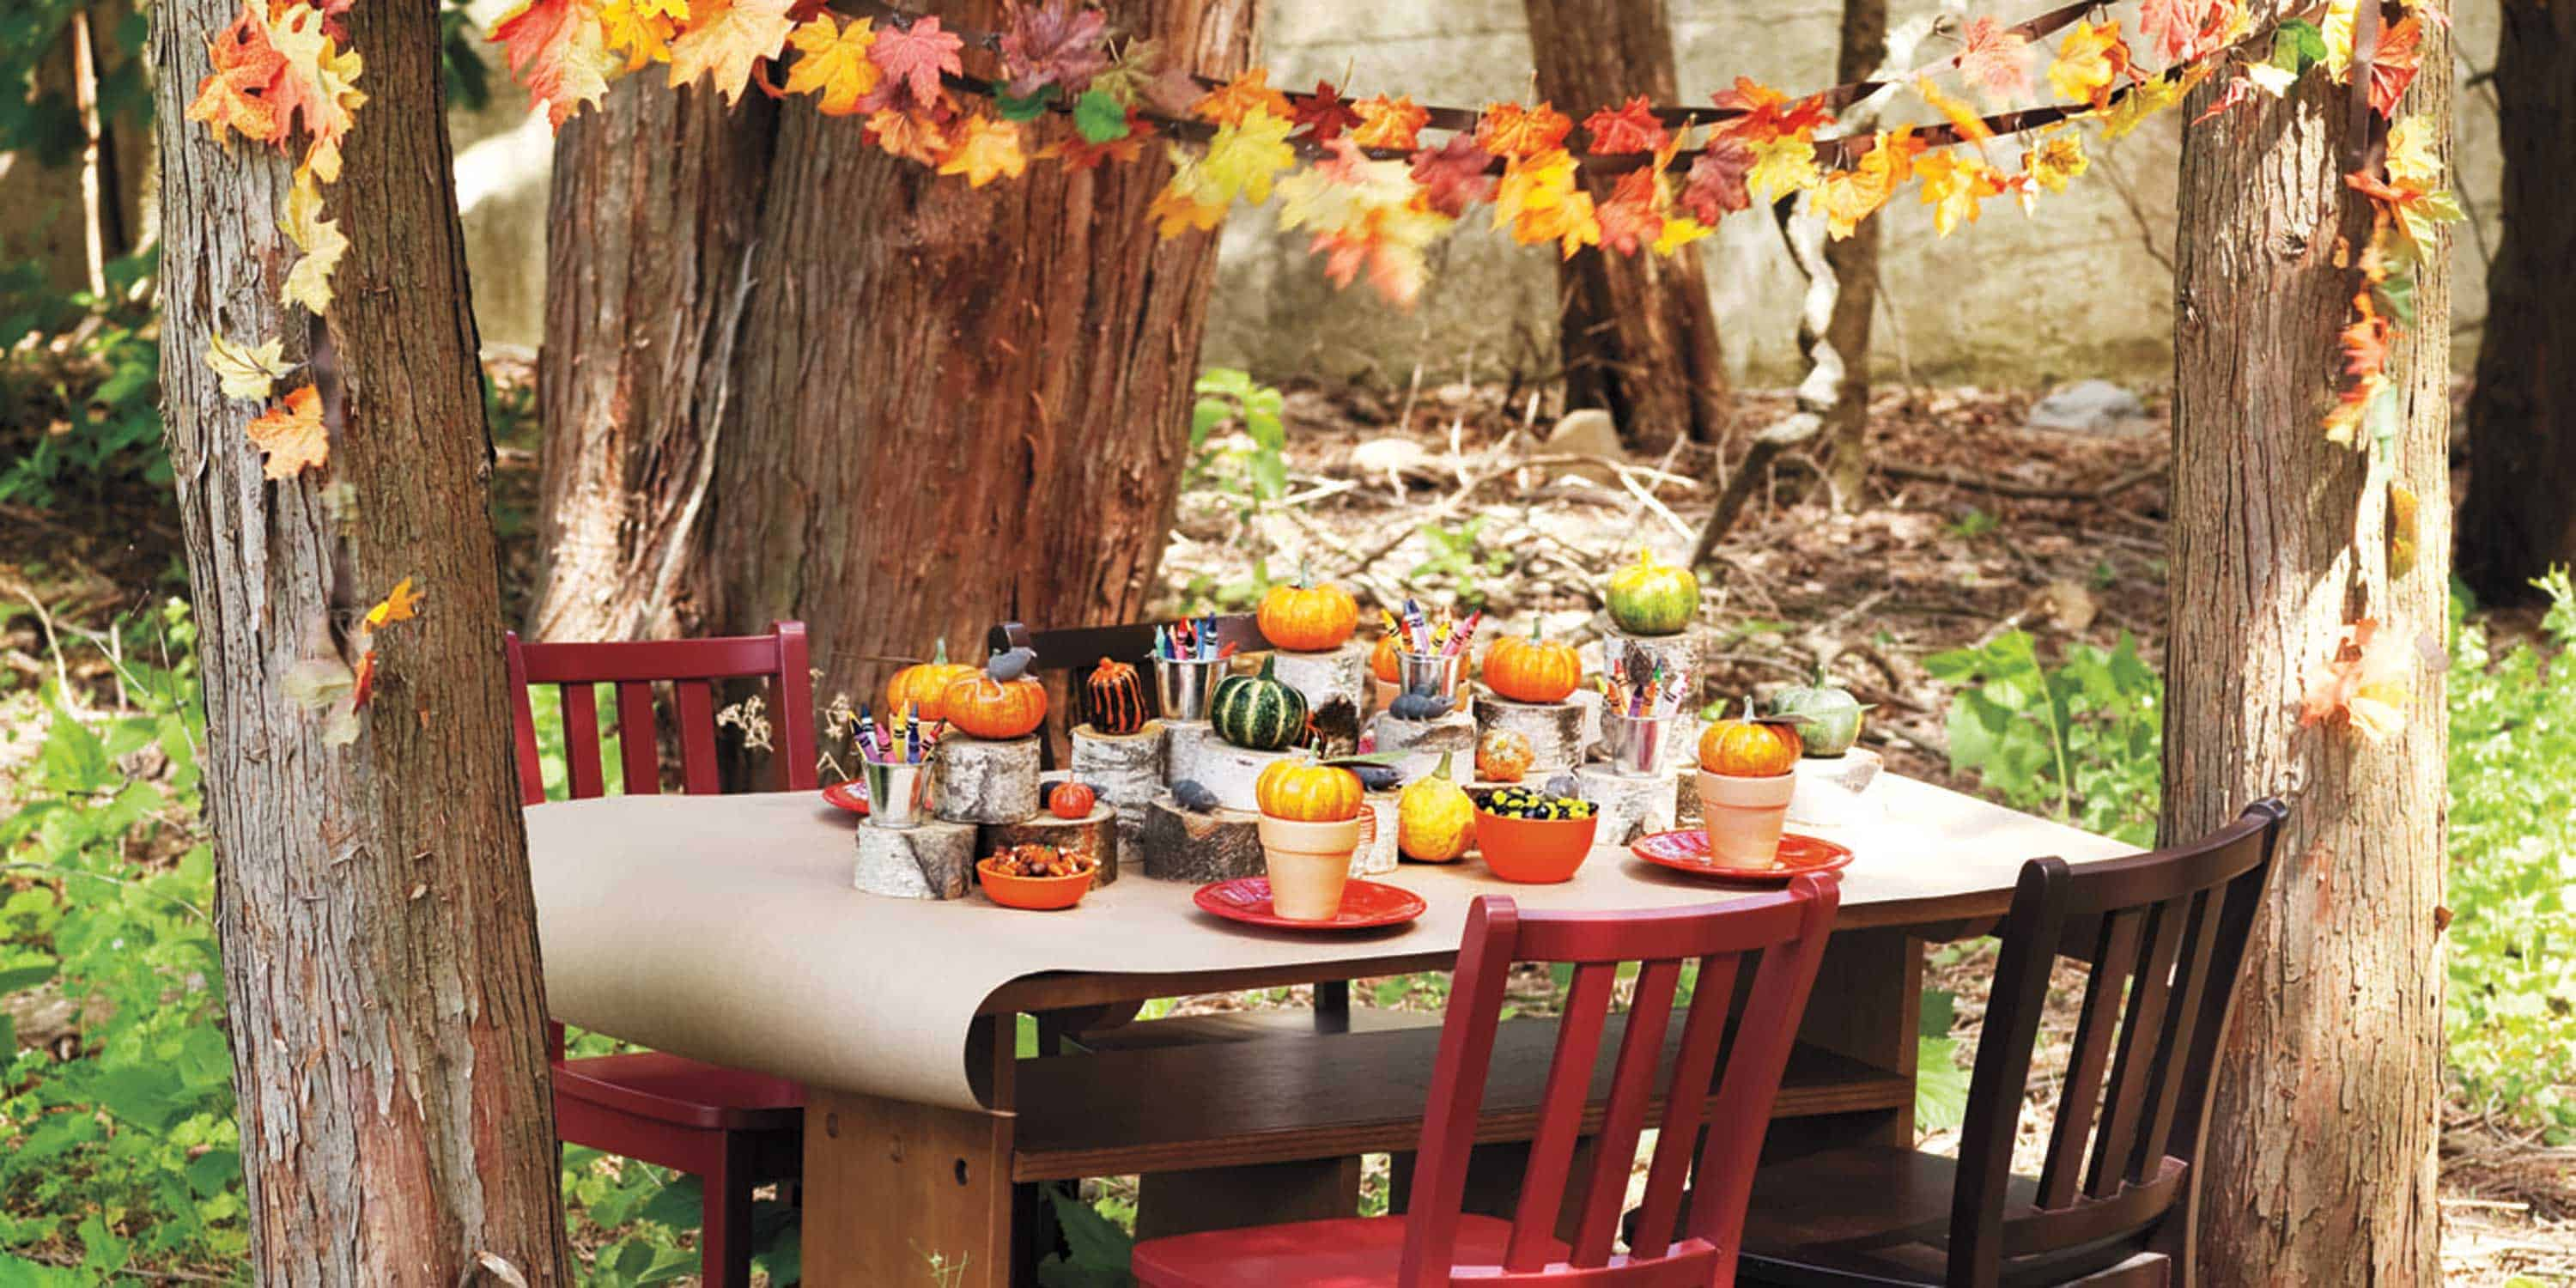 Put together and host a harvest dinner party